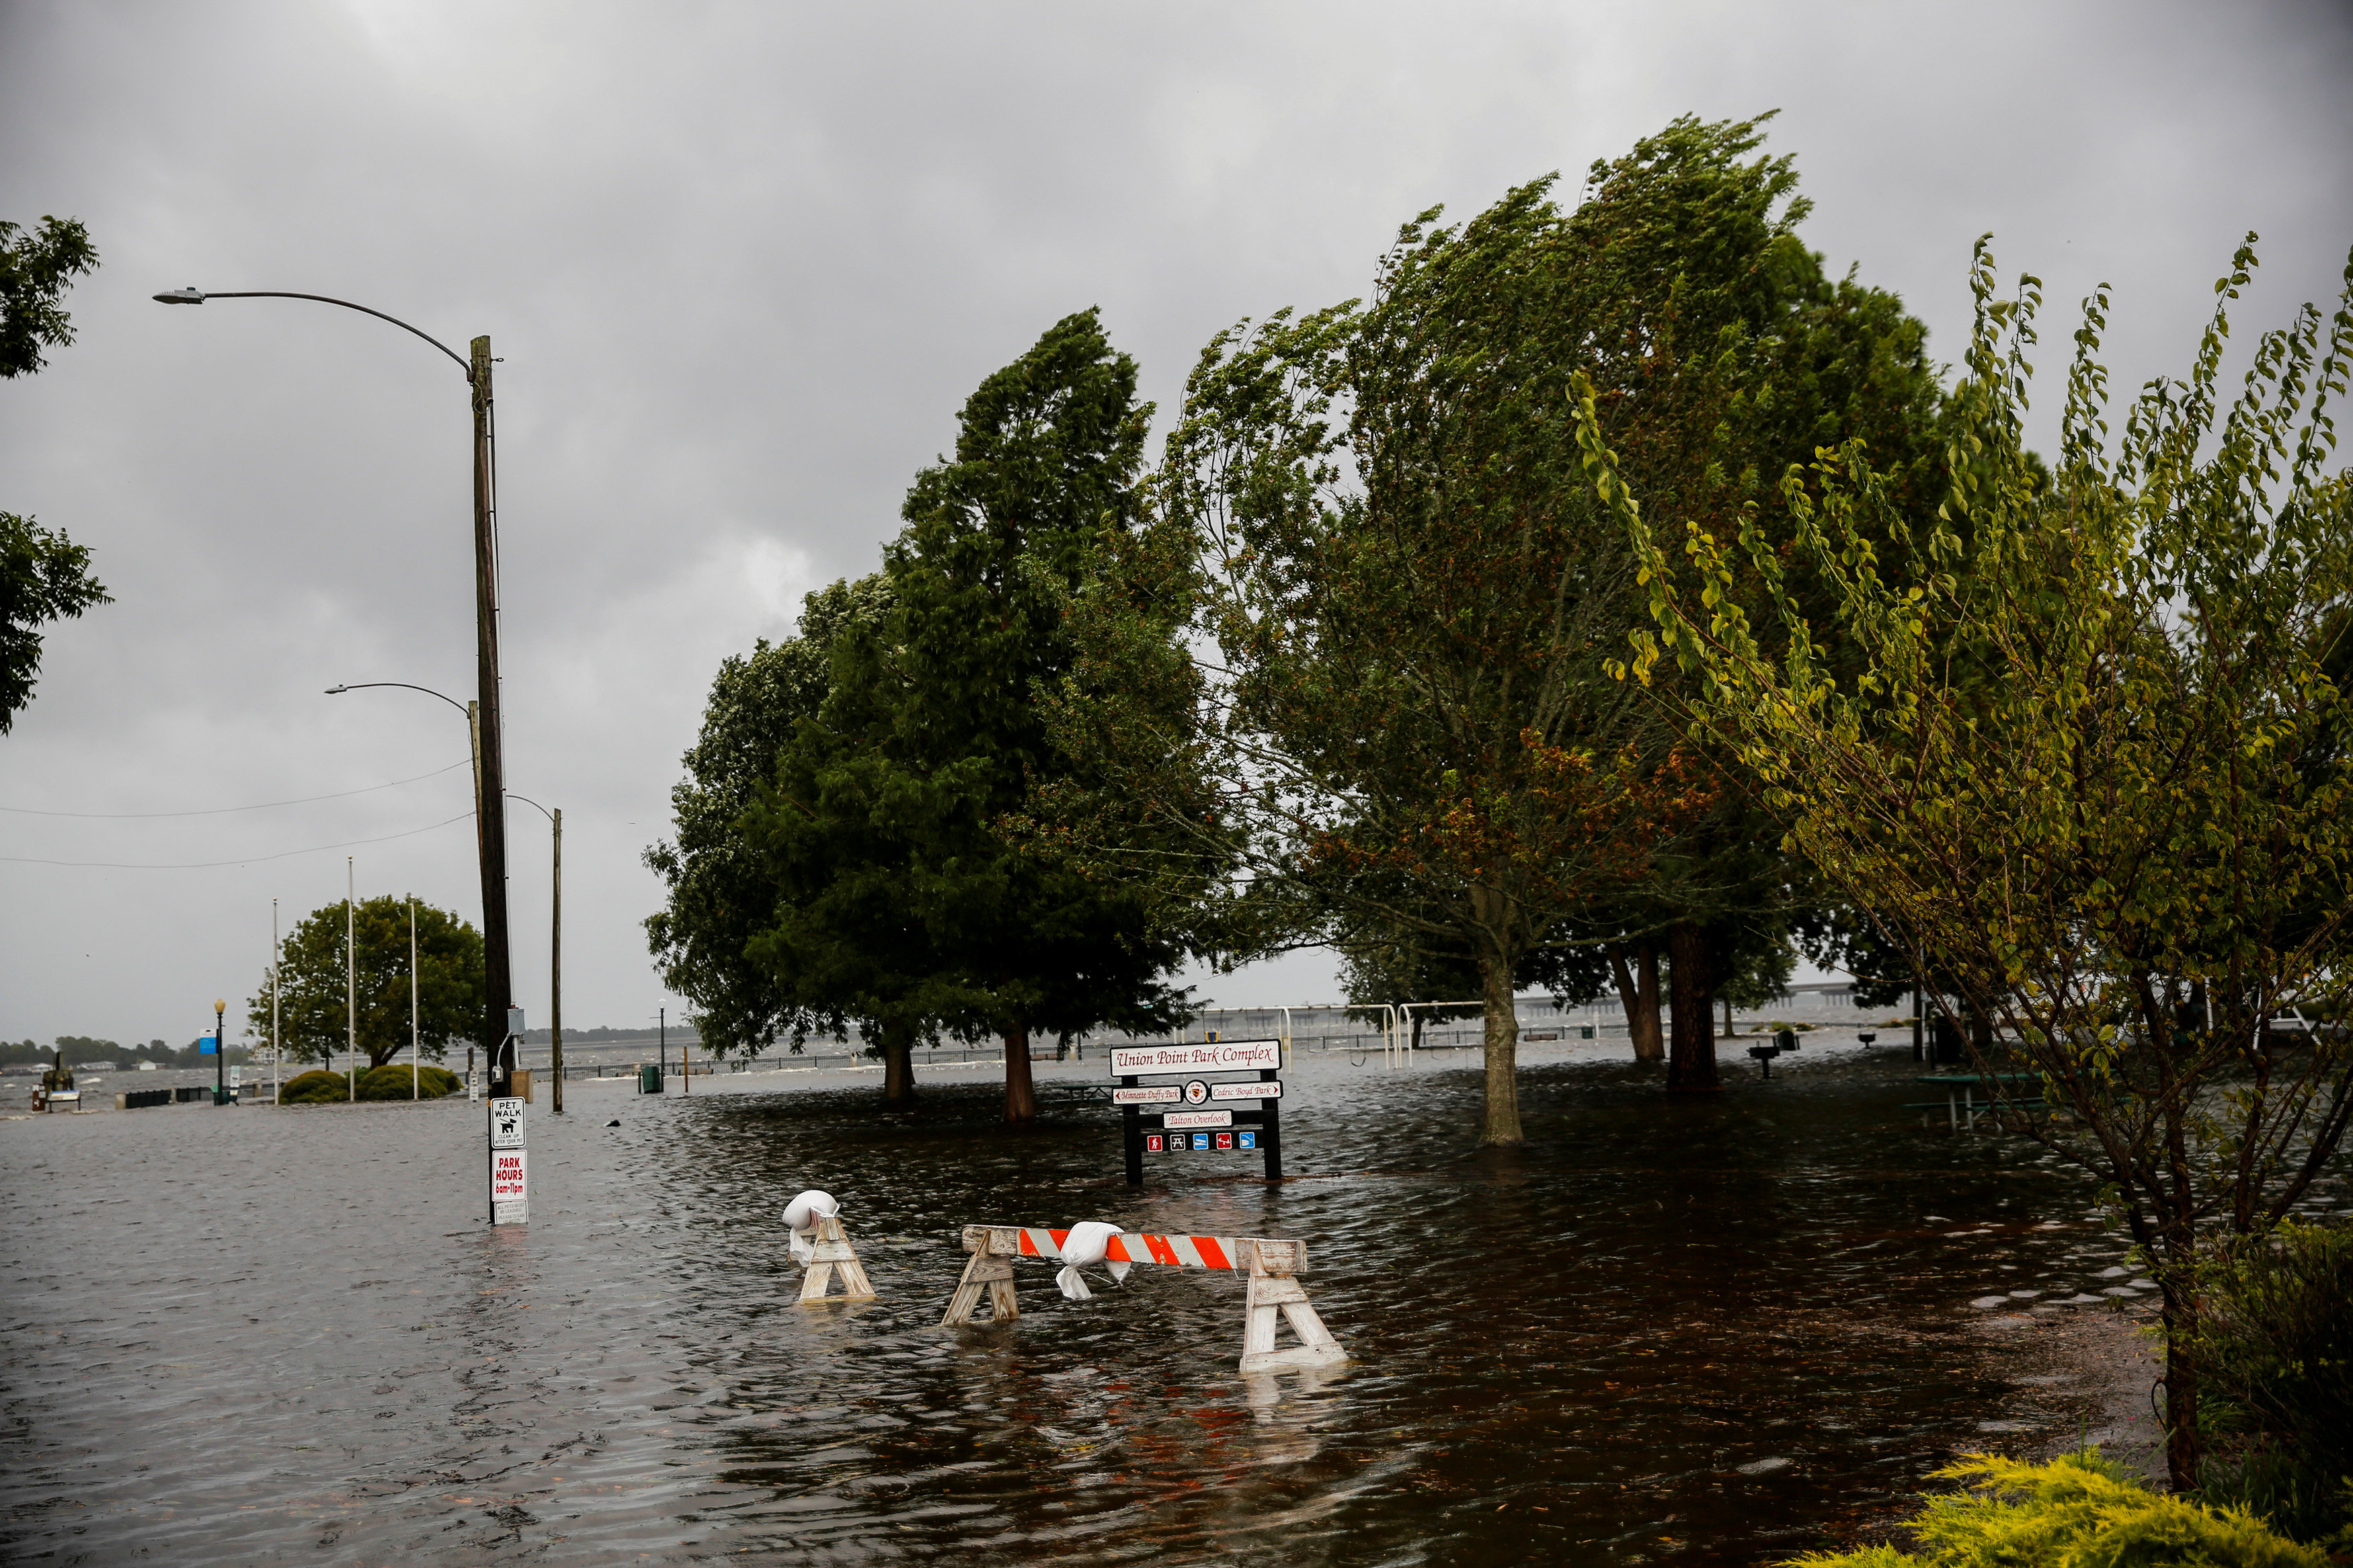 The Union Point Park Complex is seen flooded as the Hurricane Florence comes ashore in New Bern, North Carolina, U.S., September 13, 2018. REUTERS/Eduardo Munoz